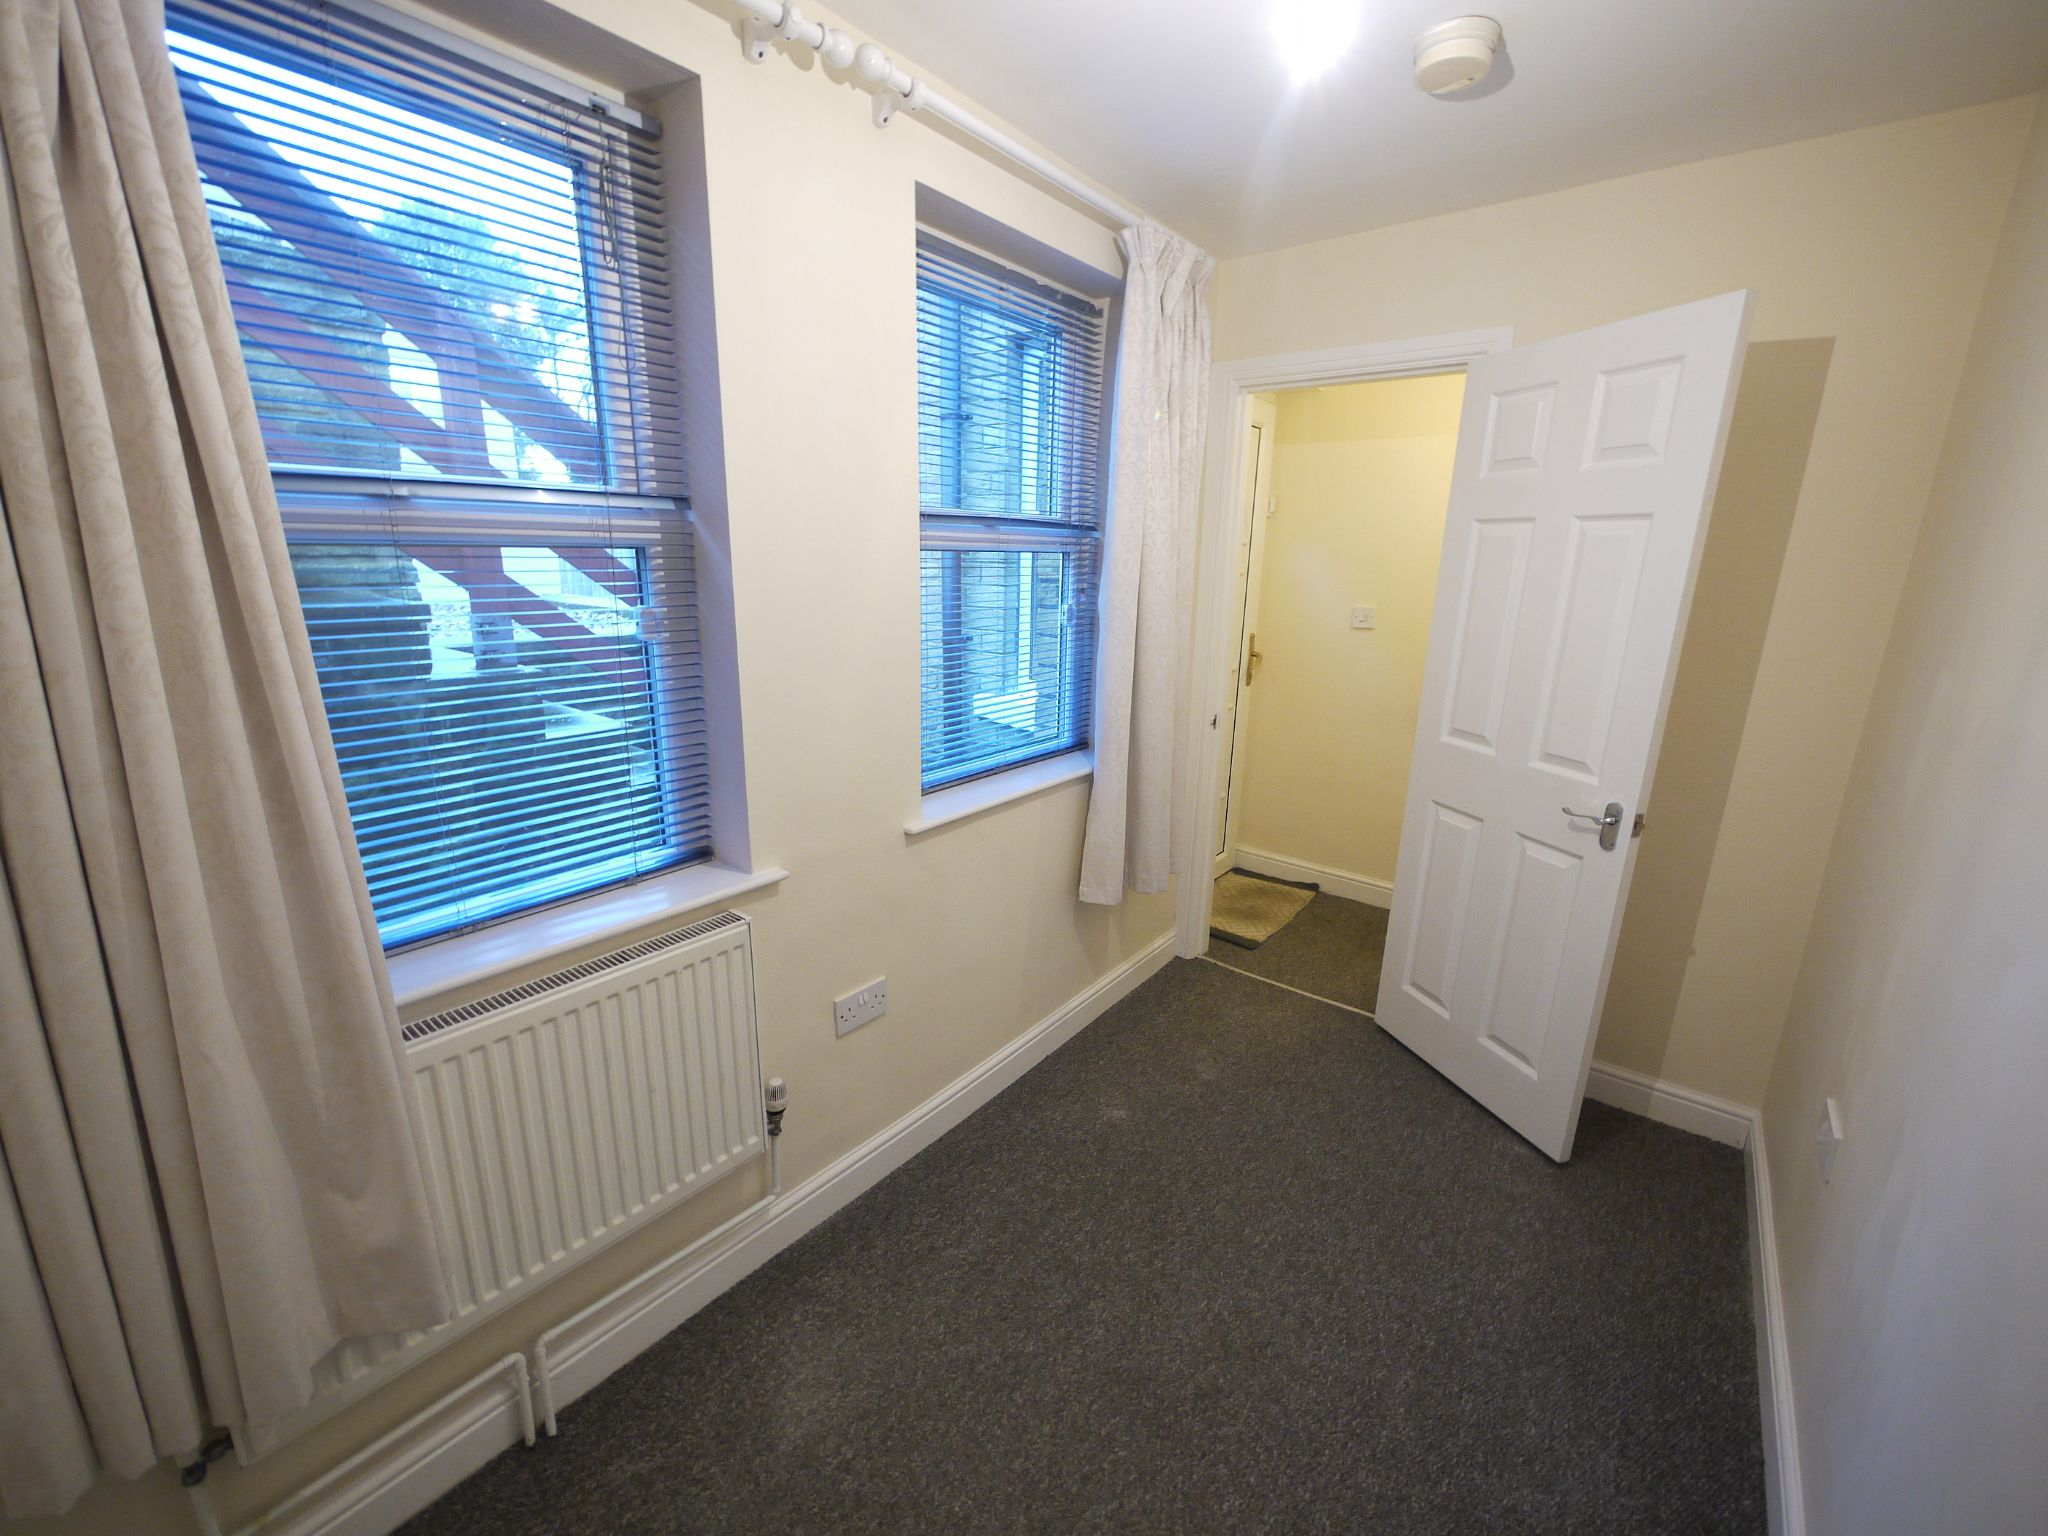 2 bedroom mid terraced house SSTC in Brighouse - Photograph 8.